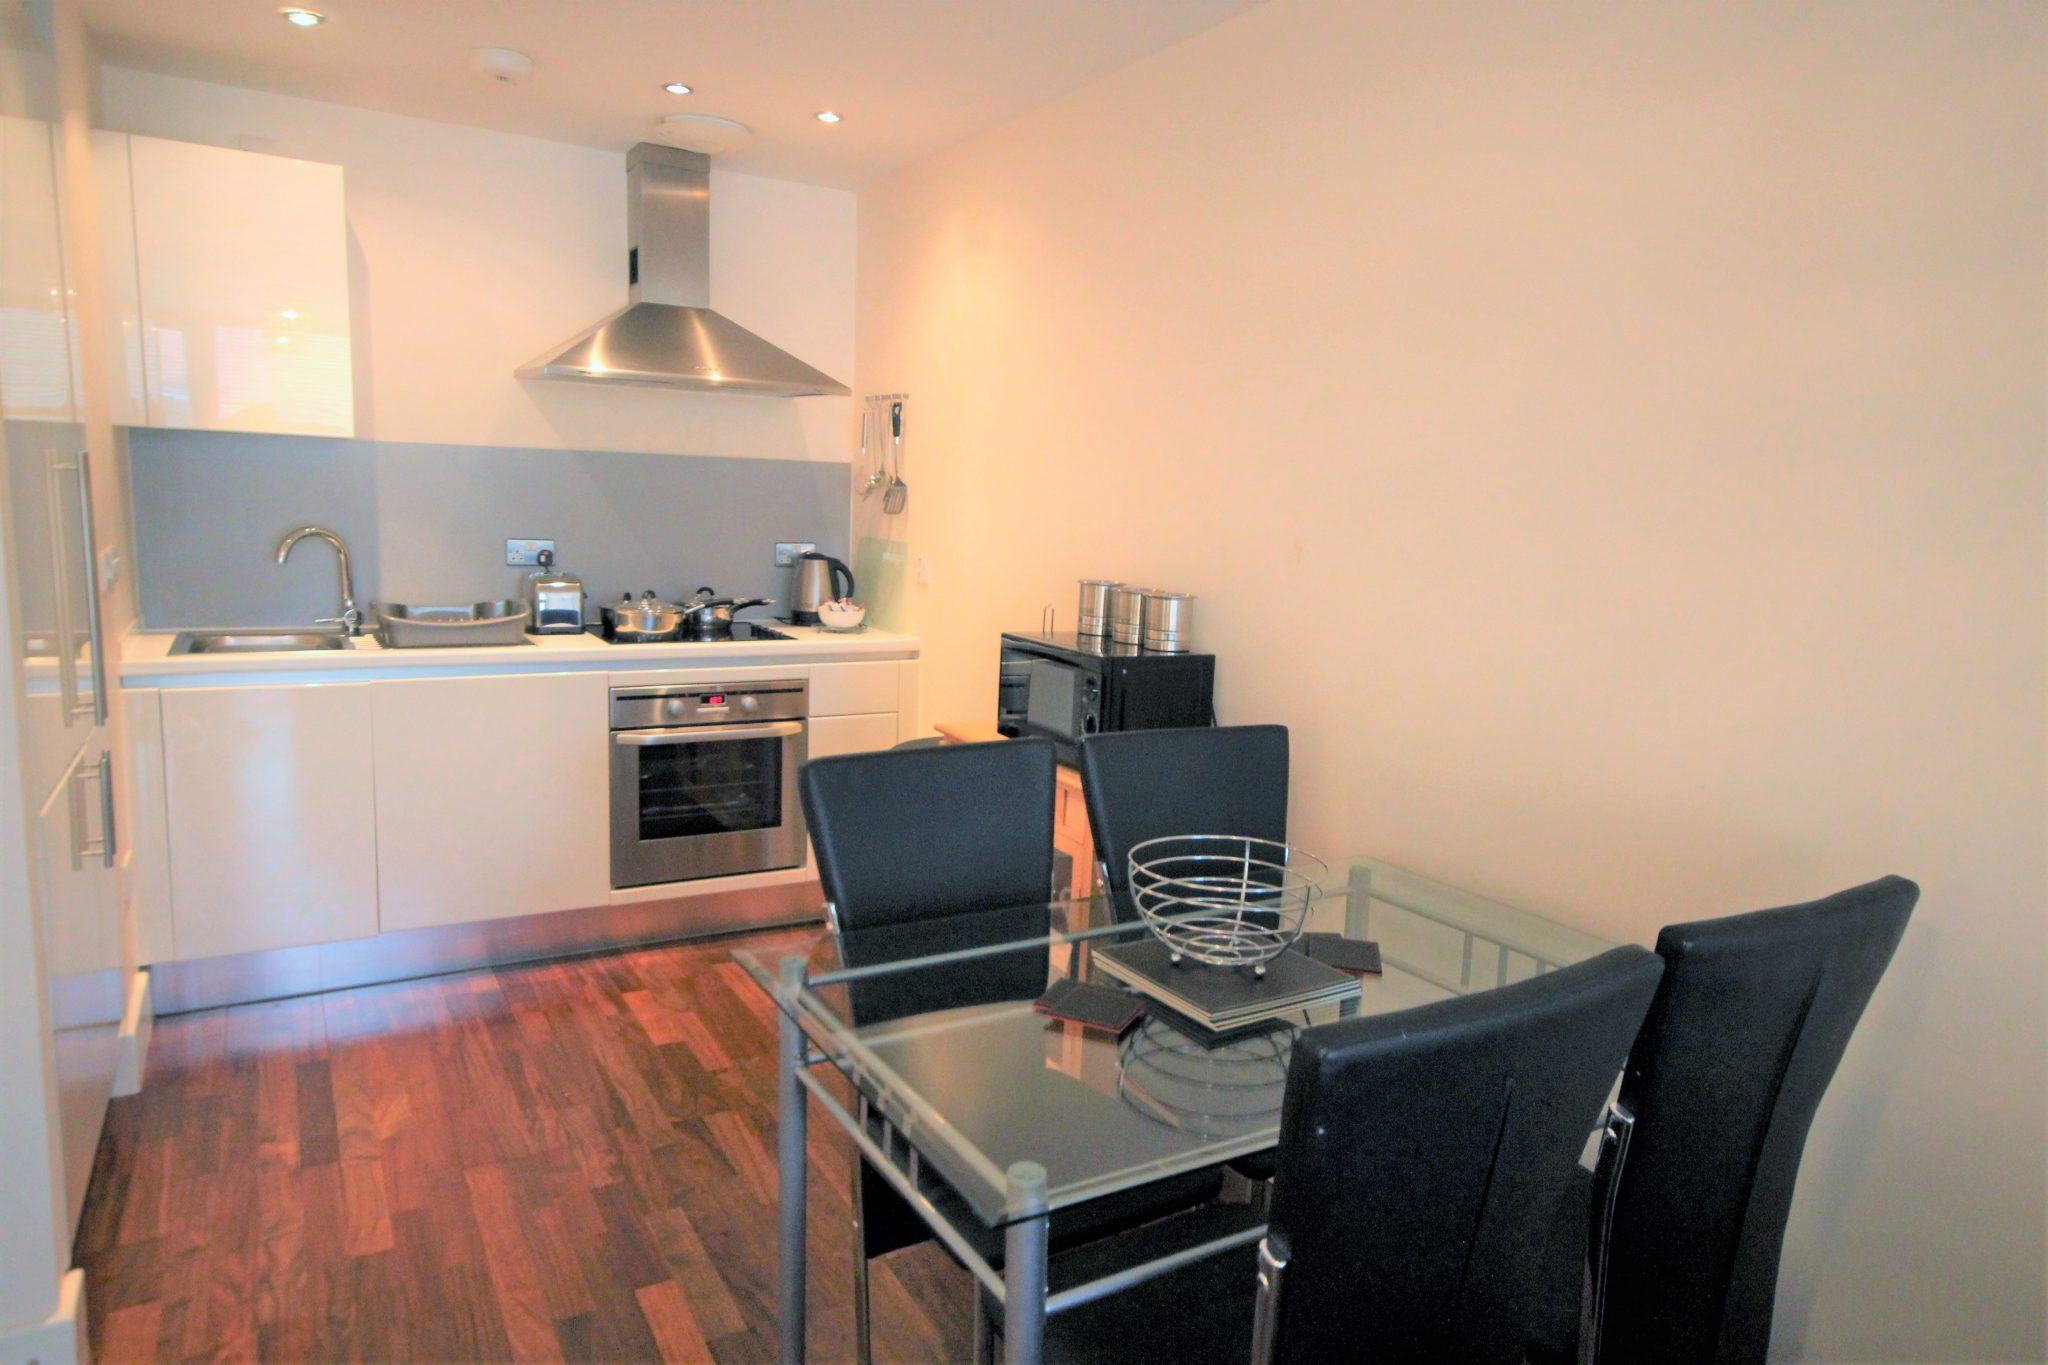 Modern-NewcastleShort-Stay-Apartments-available-from-today!-Book-Central-Newcastle-Accommodation-+-Wifi-+-Balcony,-incl-All-Bills-&-Fees!-Call:-02086913920-|-Urban-Stay